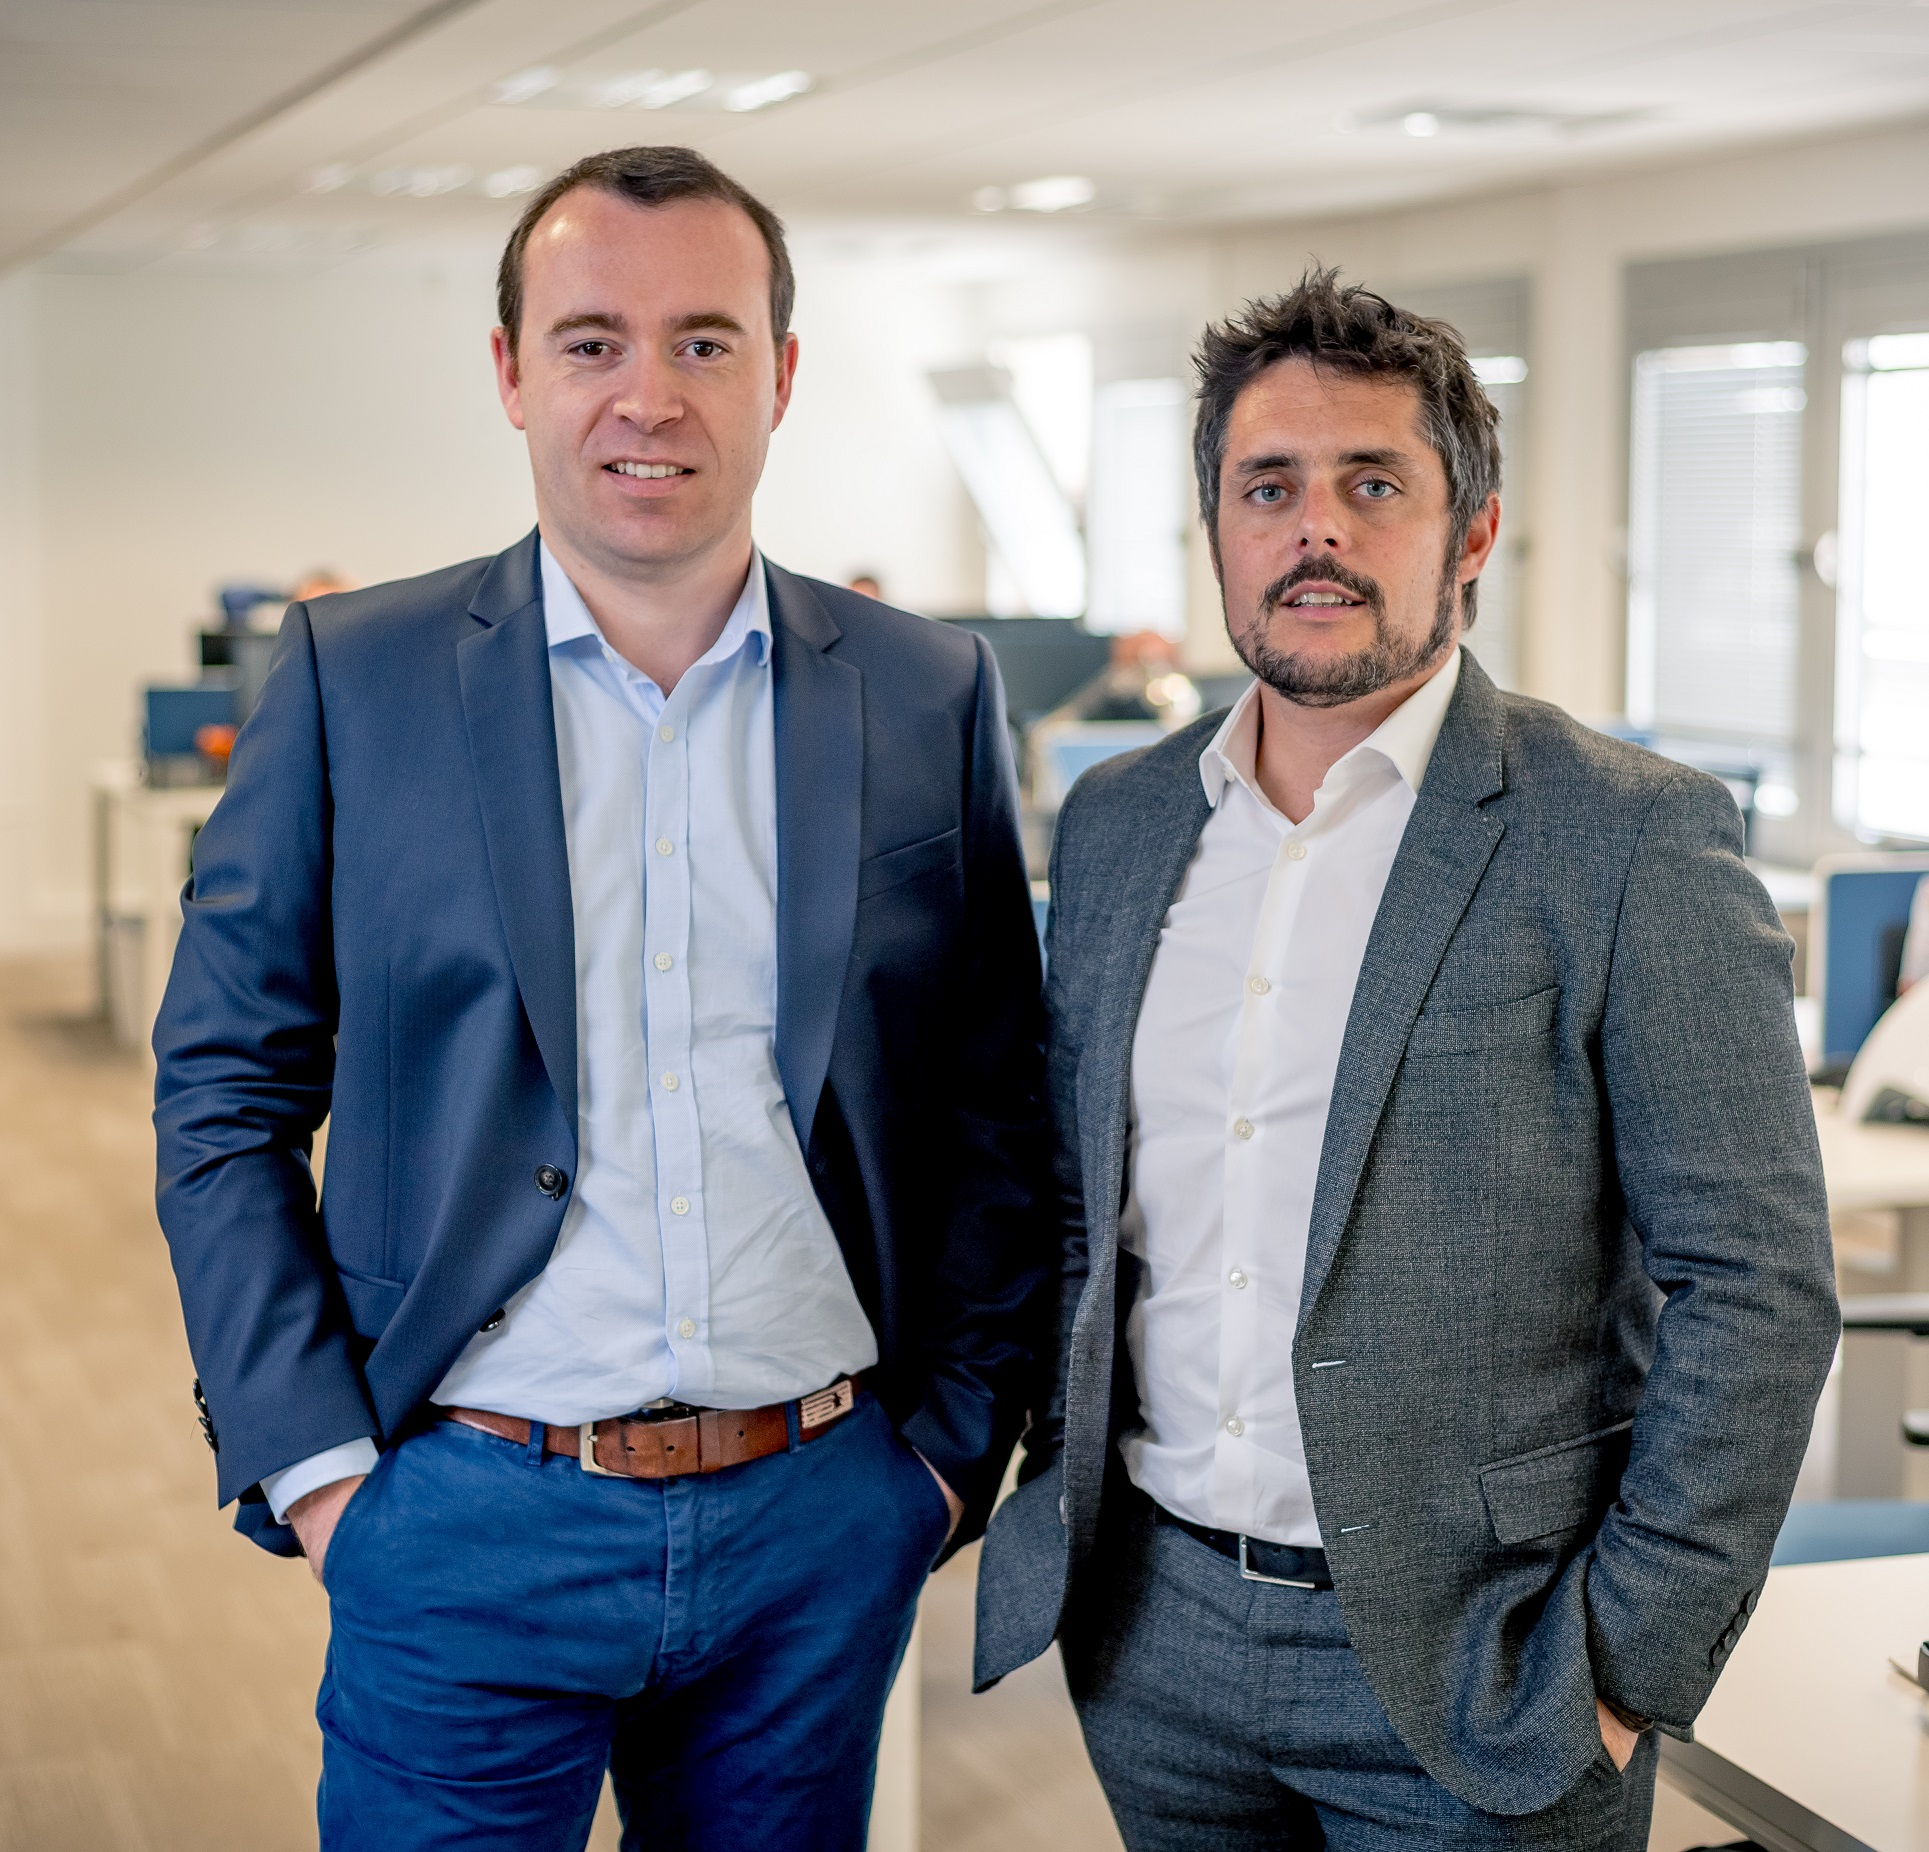 Julien Mathis and Romain le Merlus, Centreon co-founders.